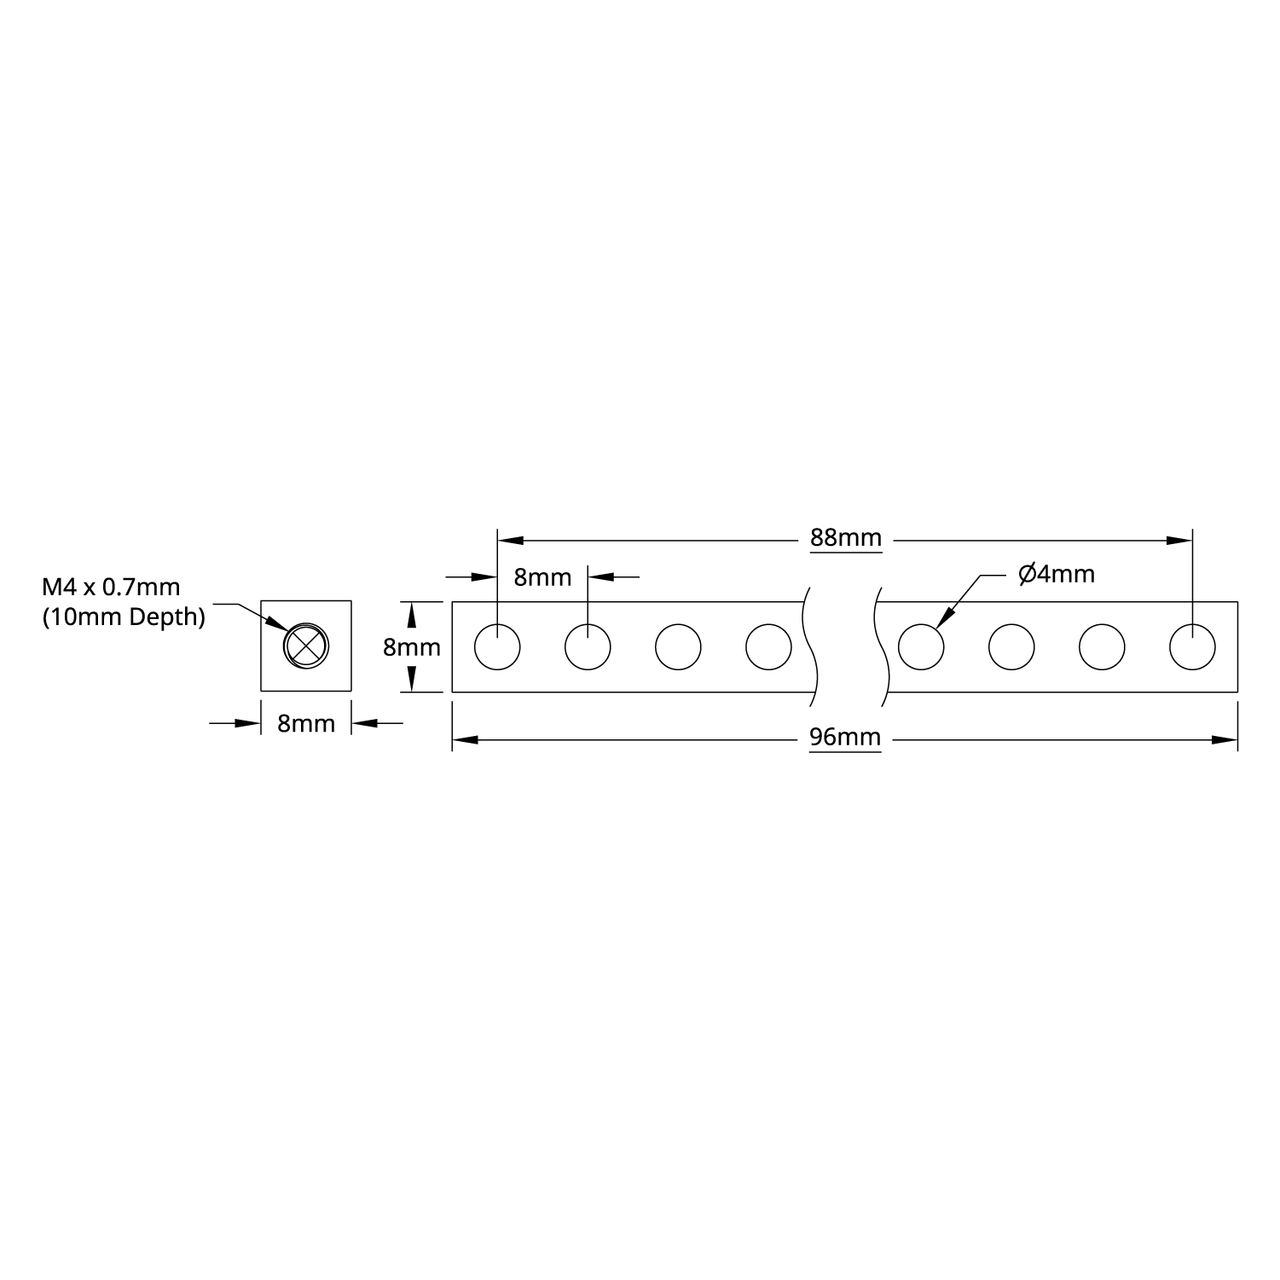 diagram cable wiring auxacord electrical schematic wiring diagram diagram cable wiring auxacord [ 1280 x 1280 Pixel ]